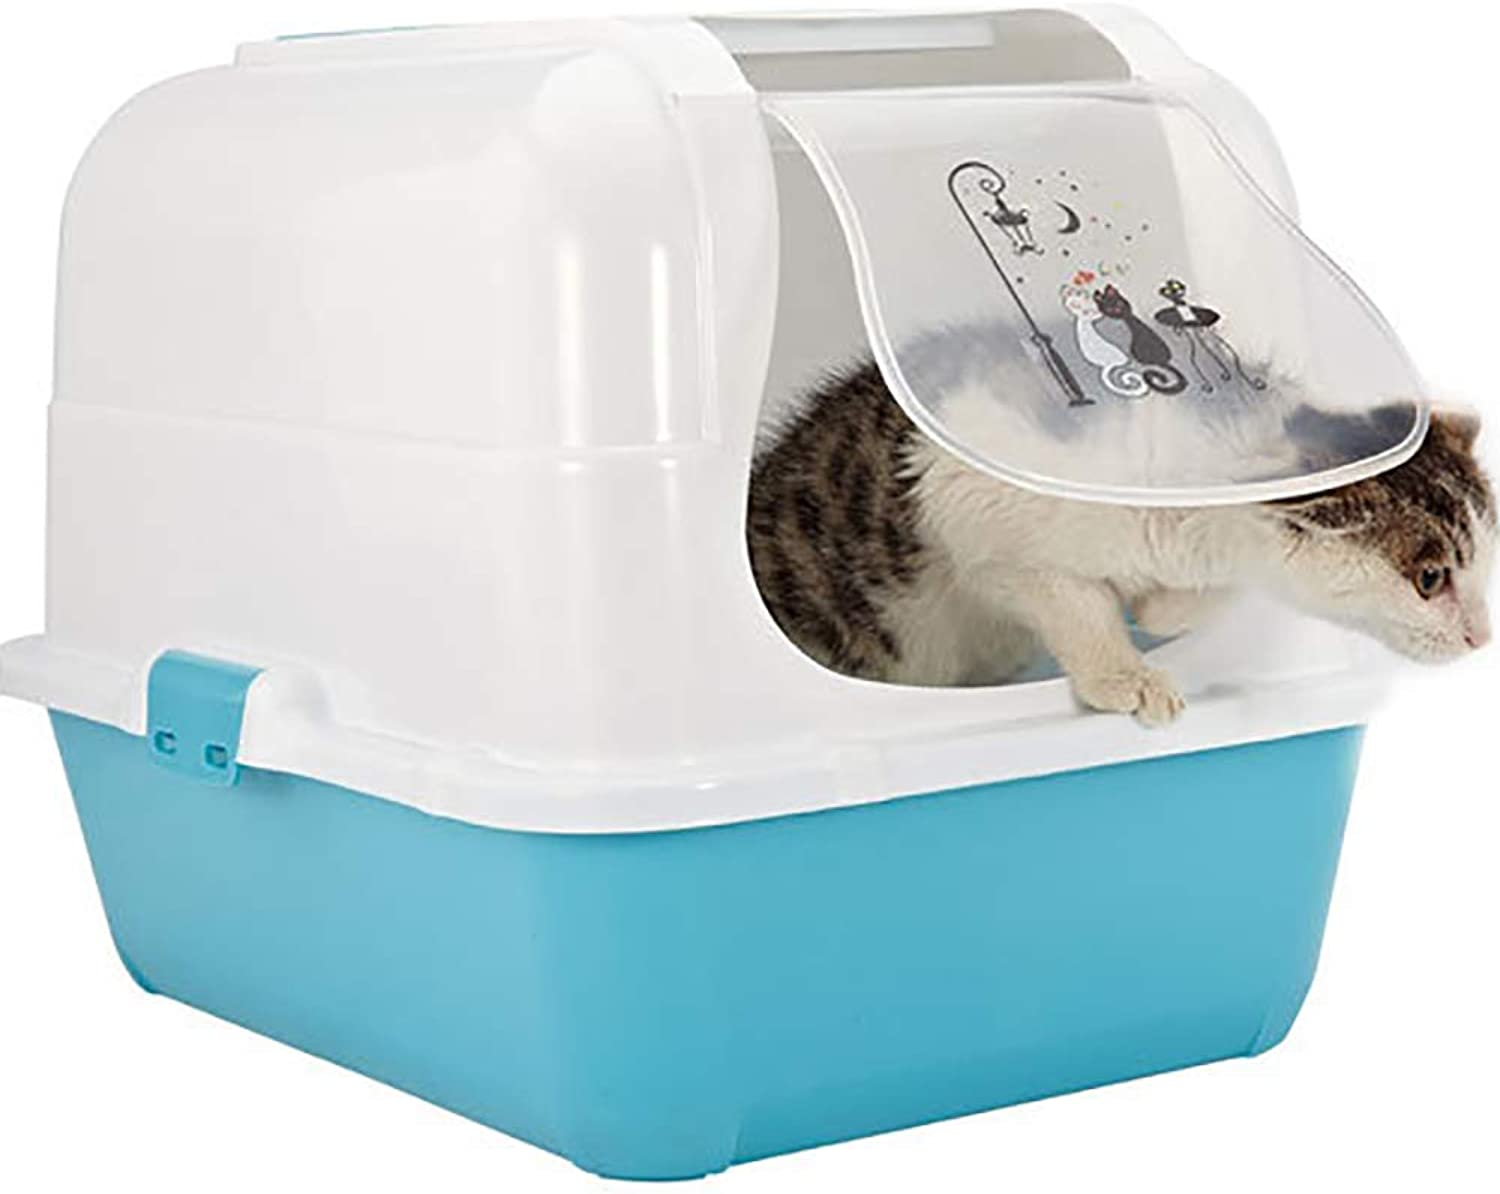 Closed Cat Toilet, Closed Cat Toilet Large Room,Clean Step Litter cat Toilet,Cat Toilet Training Systems,pet toilet,Durable,Clean